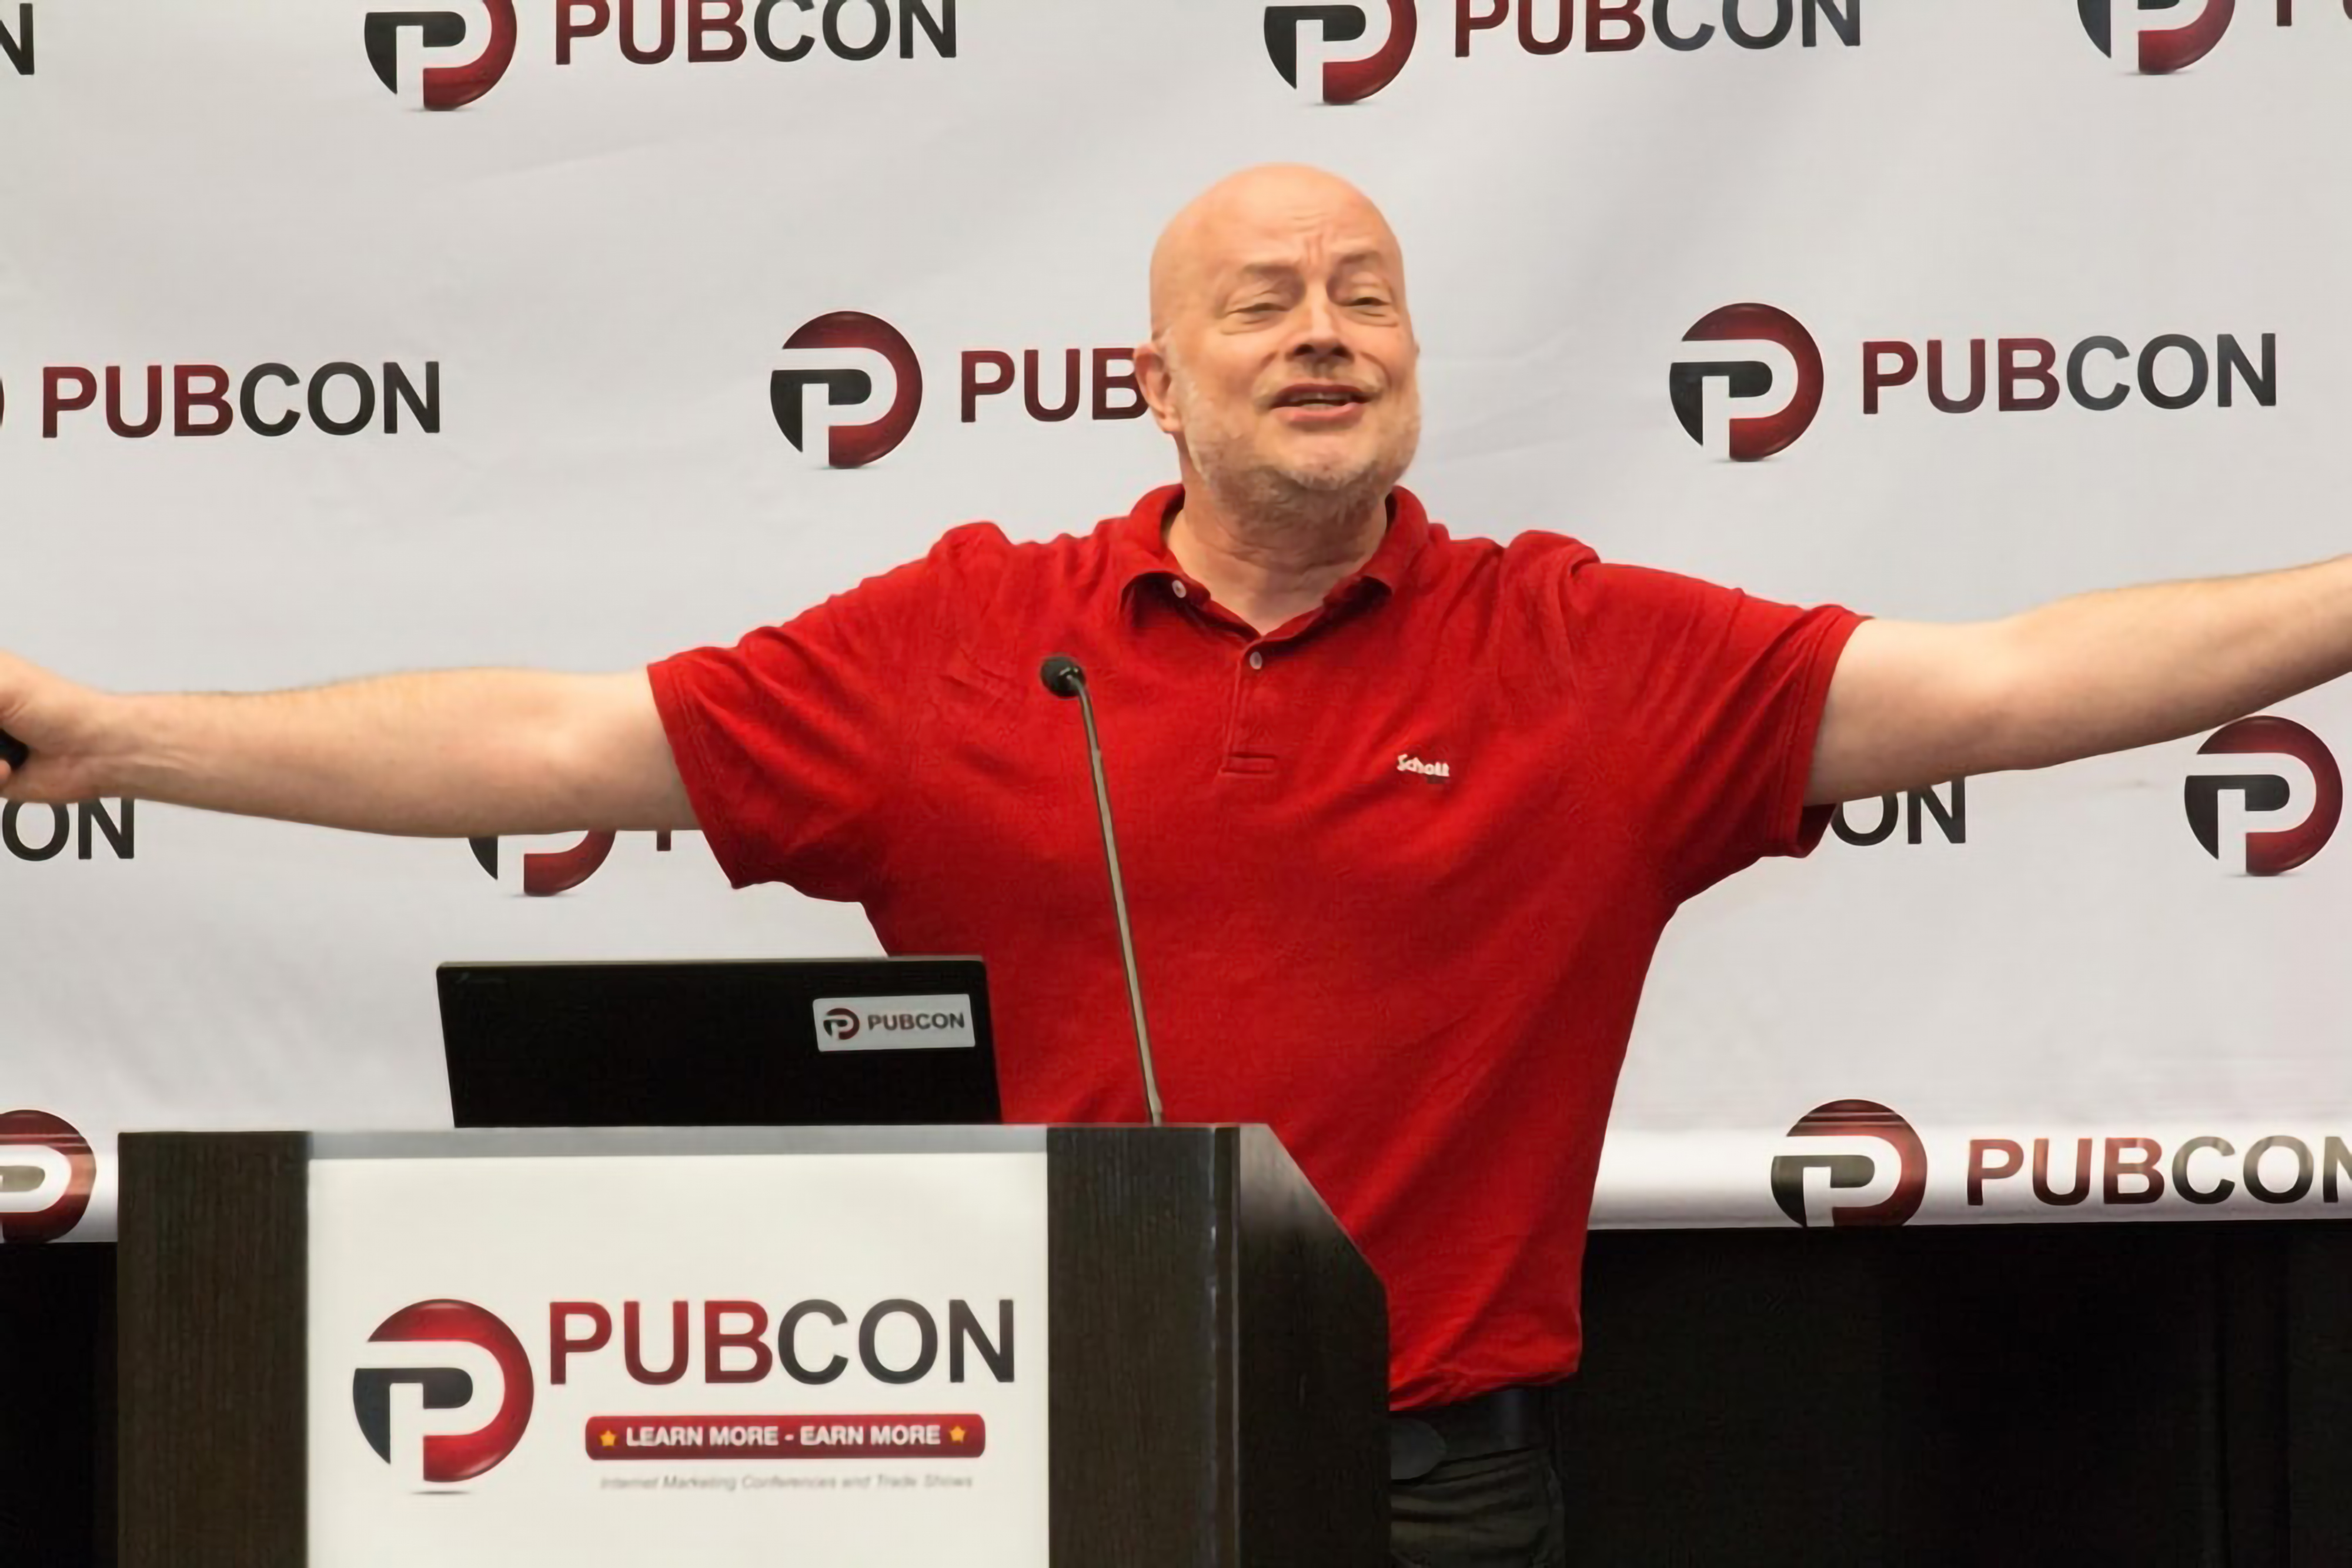 Jason Barnard Speaking at Pubcon Las Vegas 2019